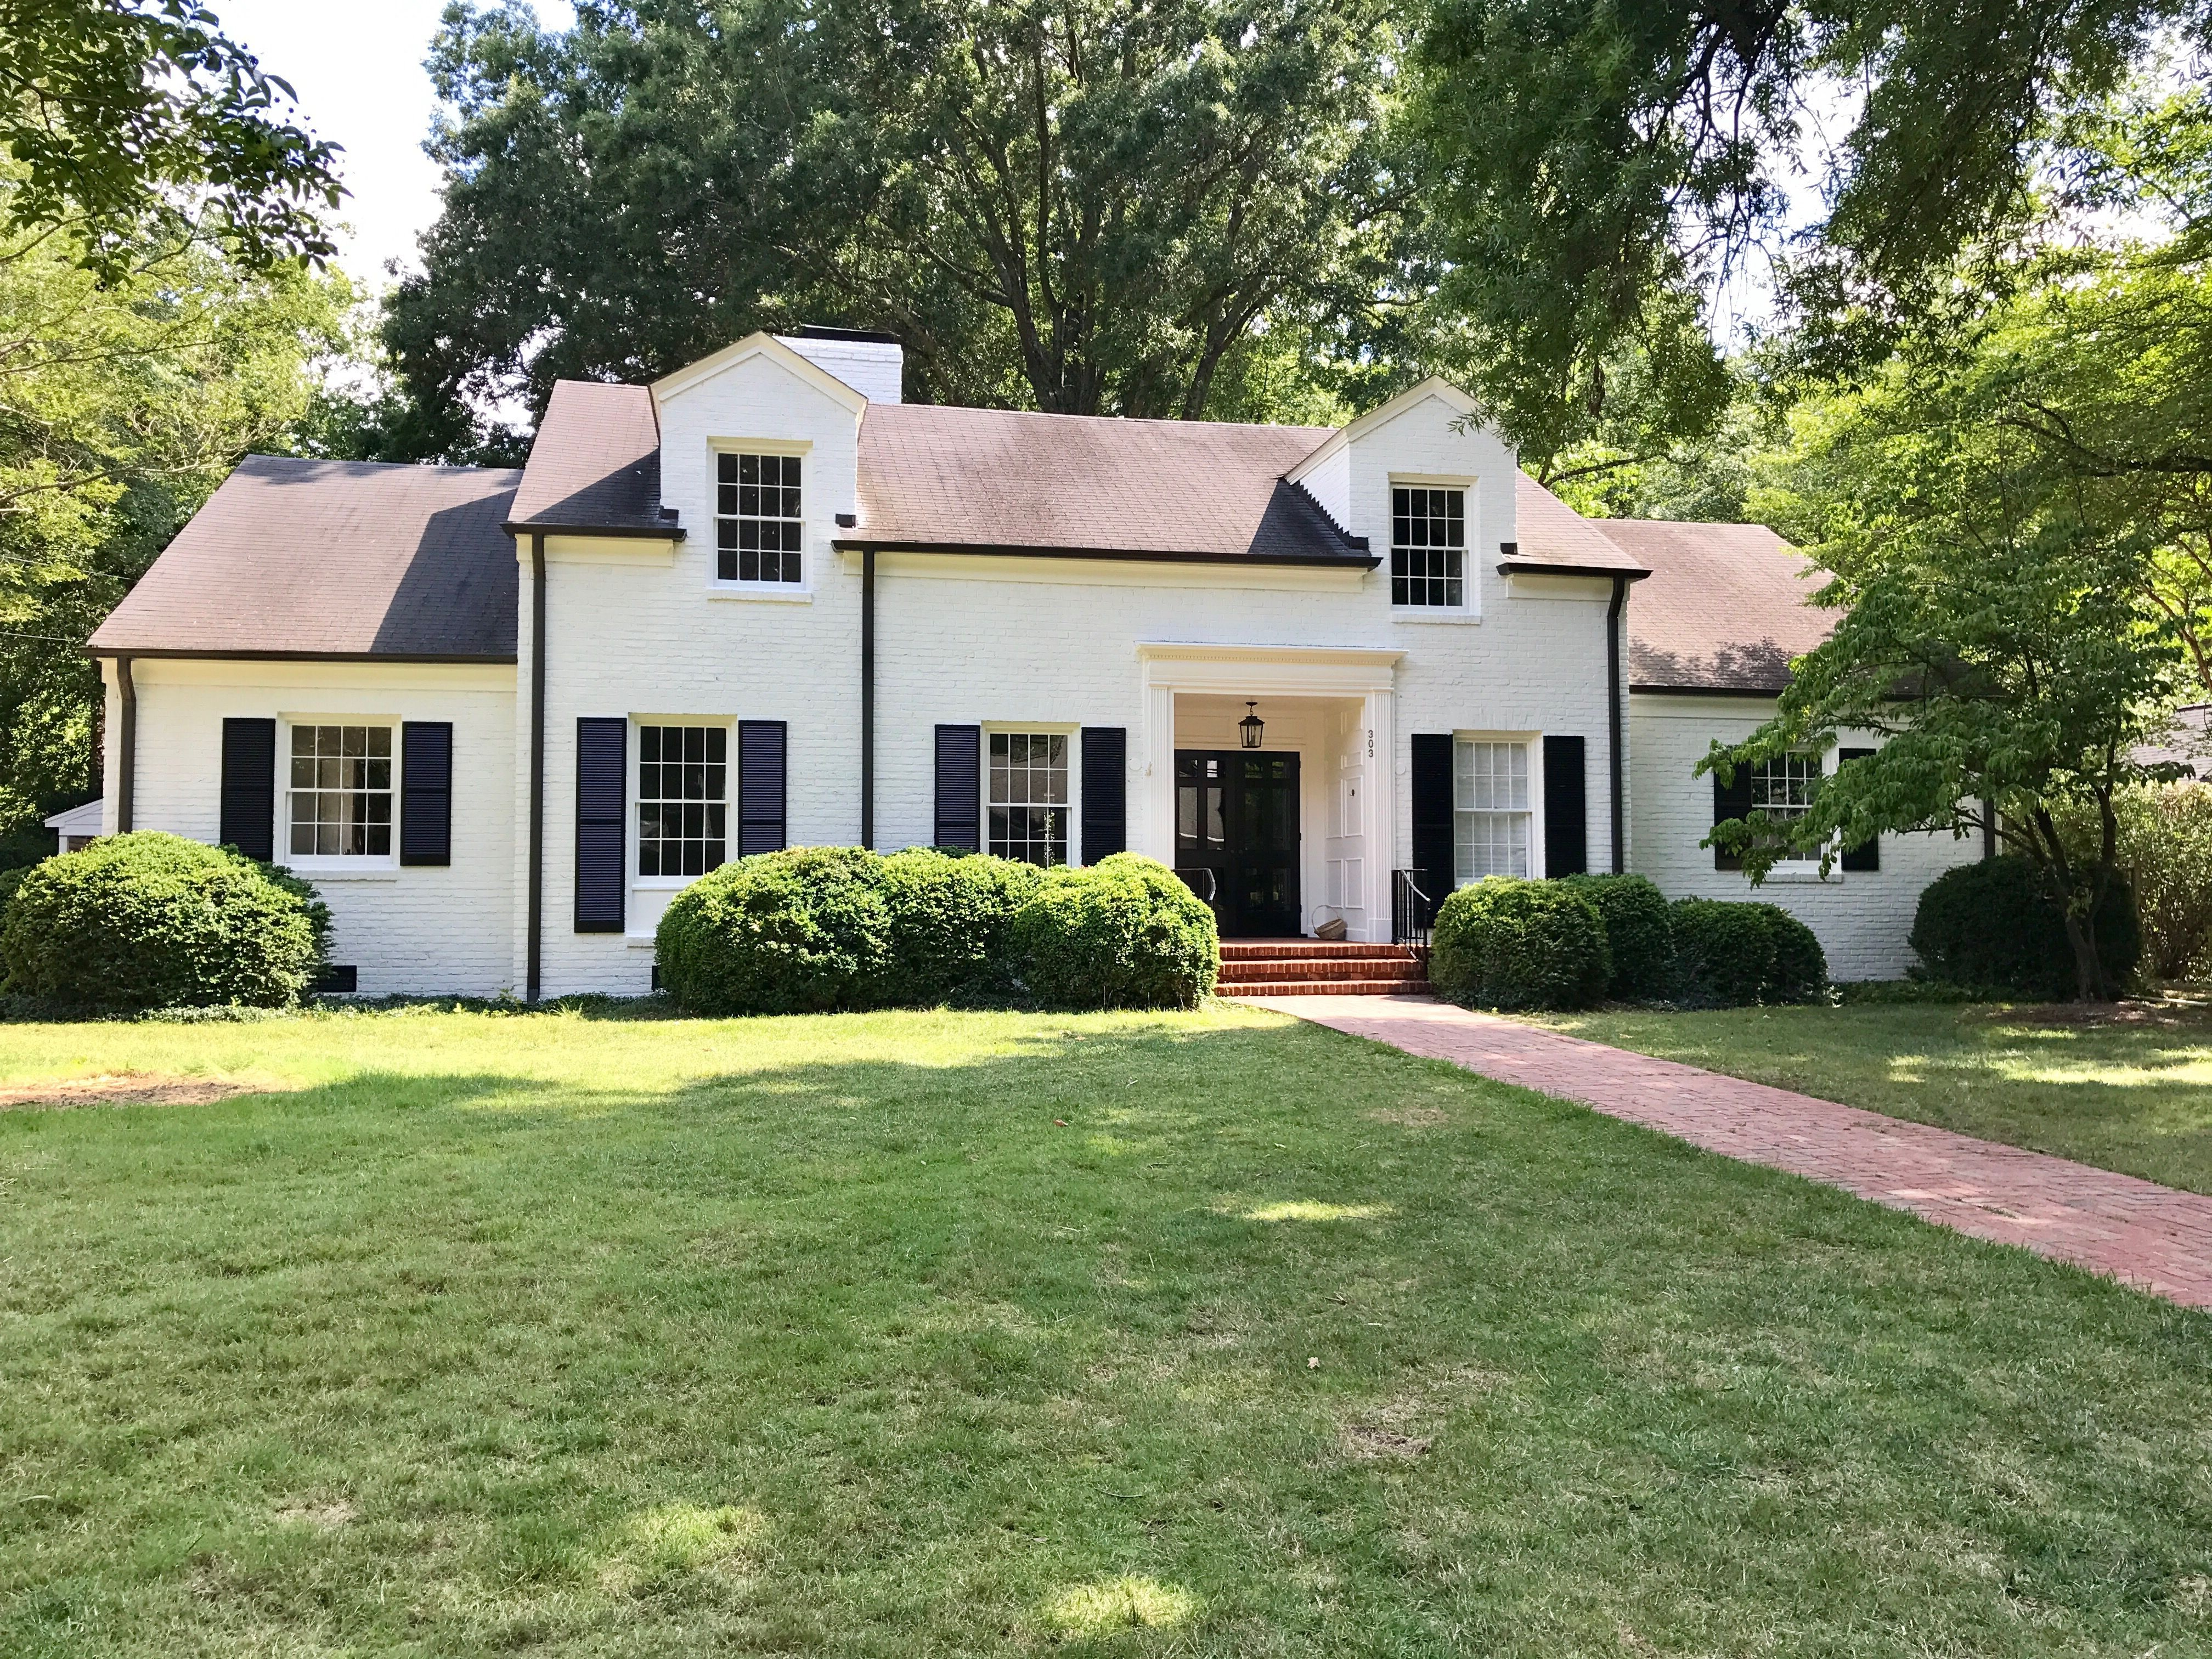 Exterior Paint Color White Brick Traditional House